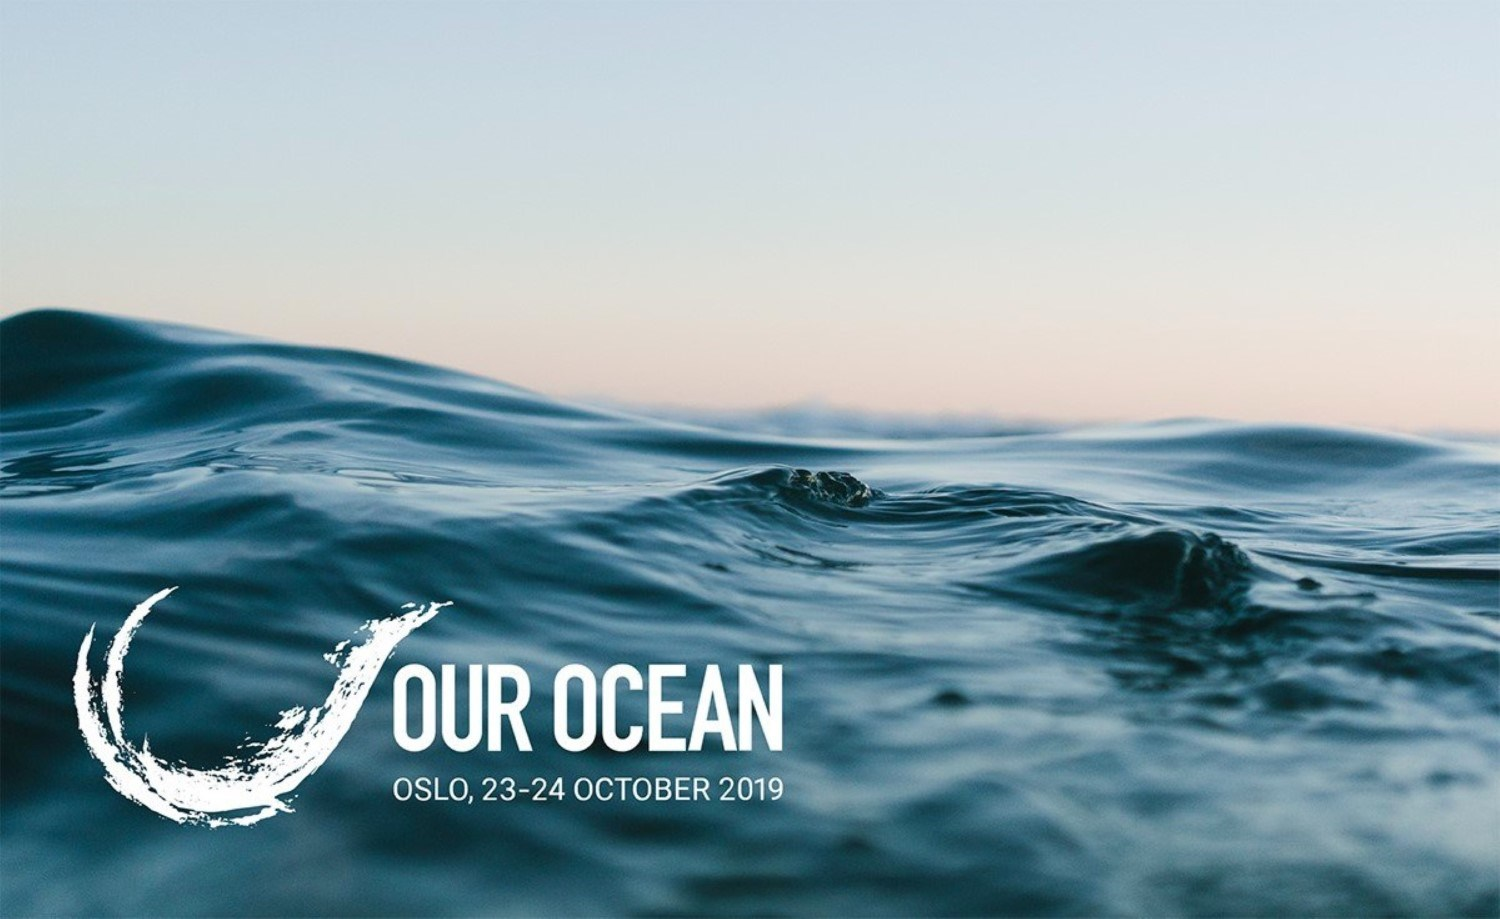 Our ocean graphic